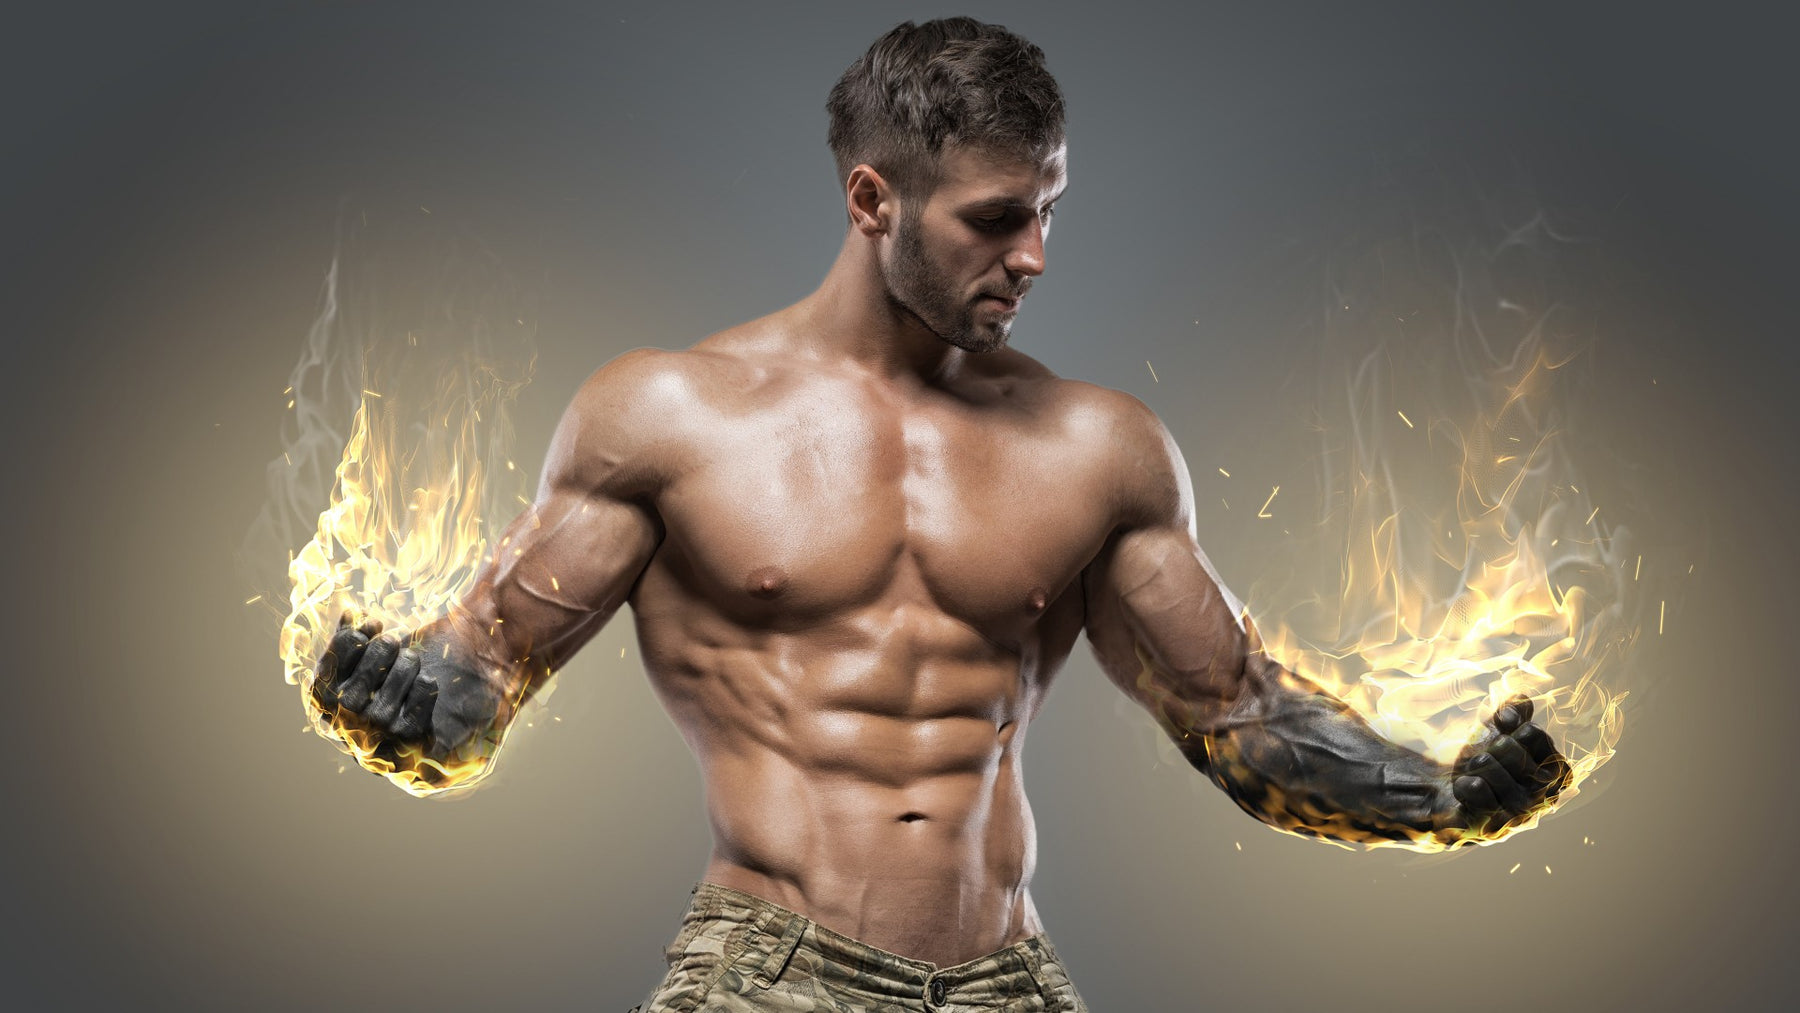 How to Build Muscle Naturally at an Optimal Rate